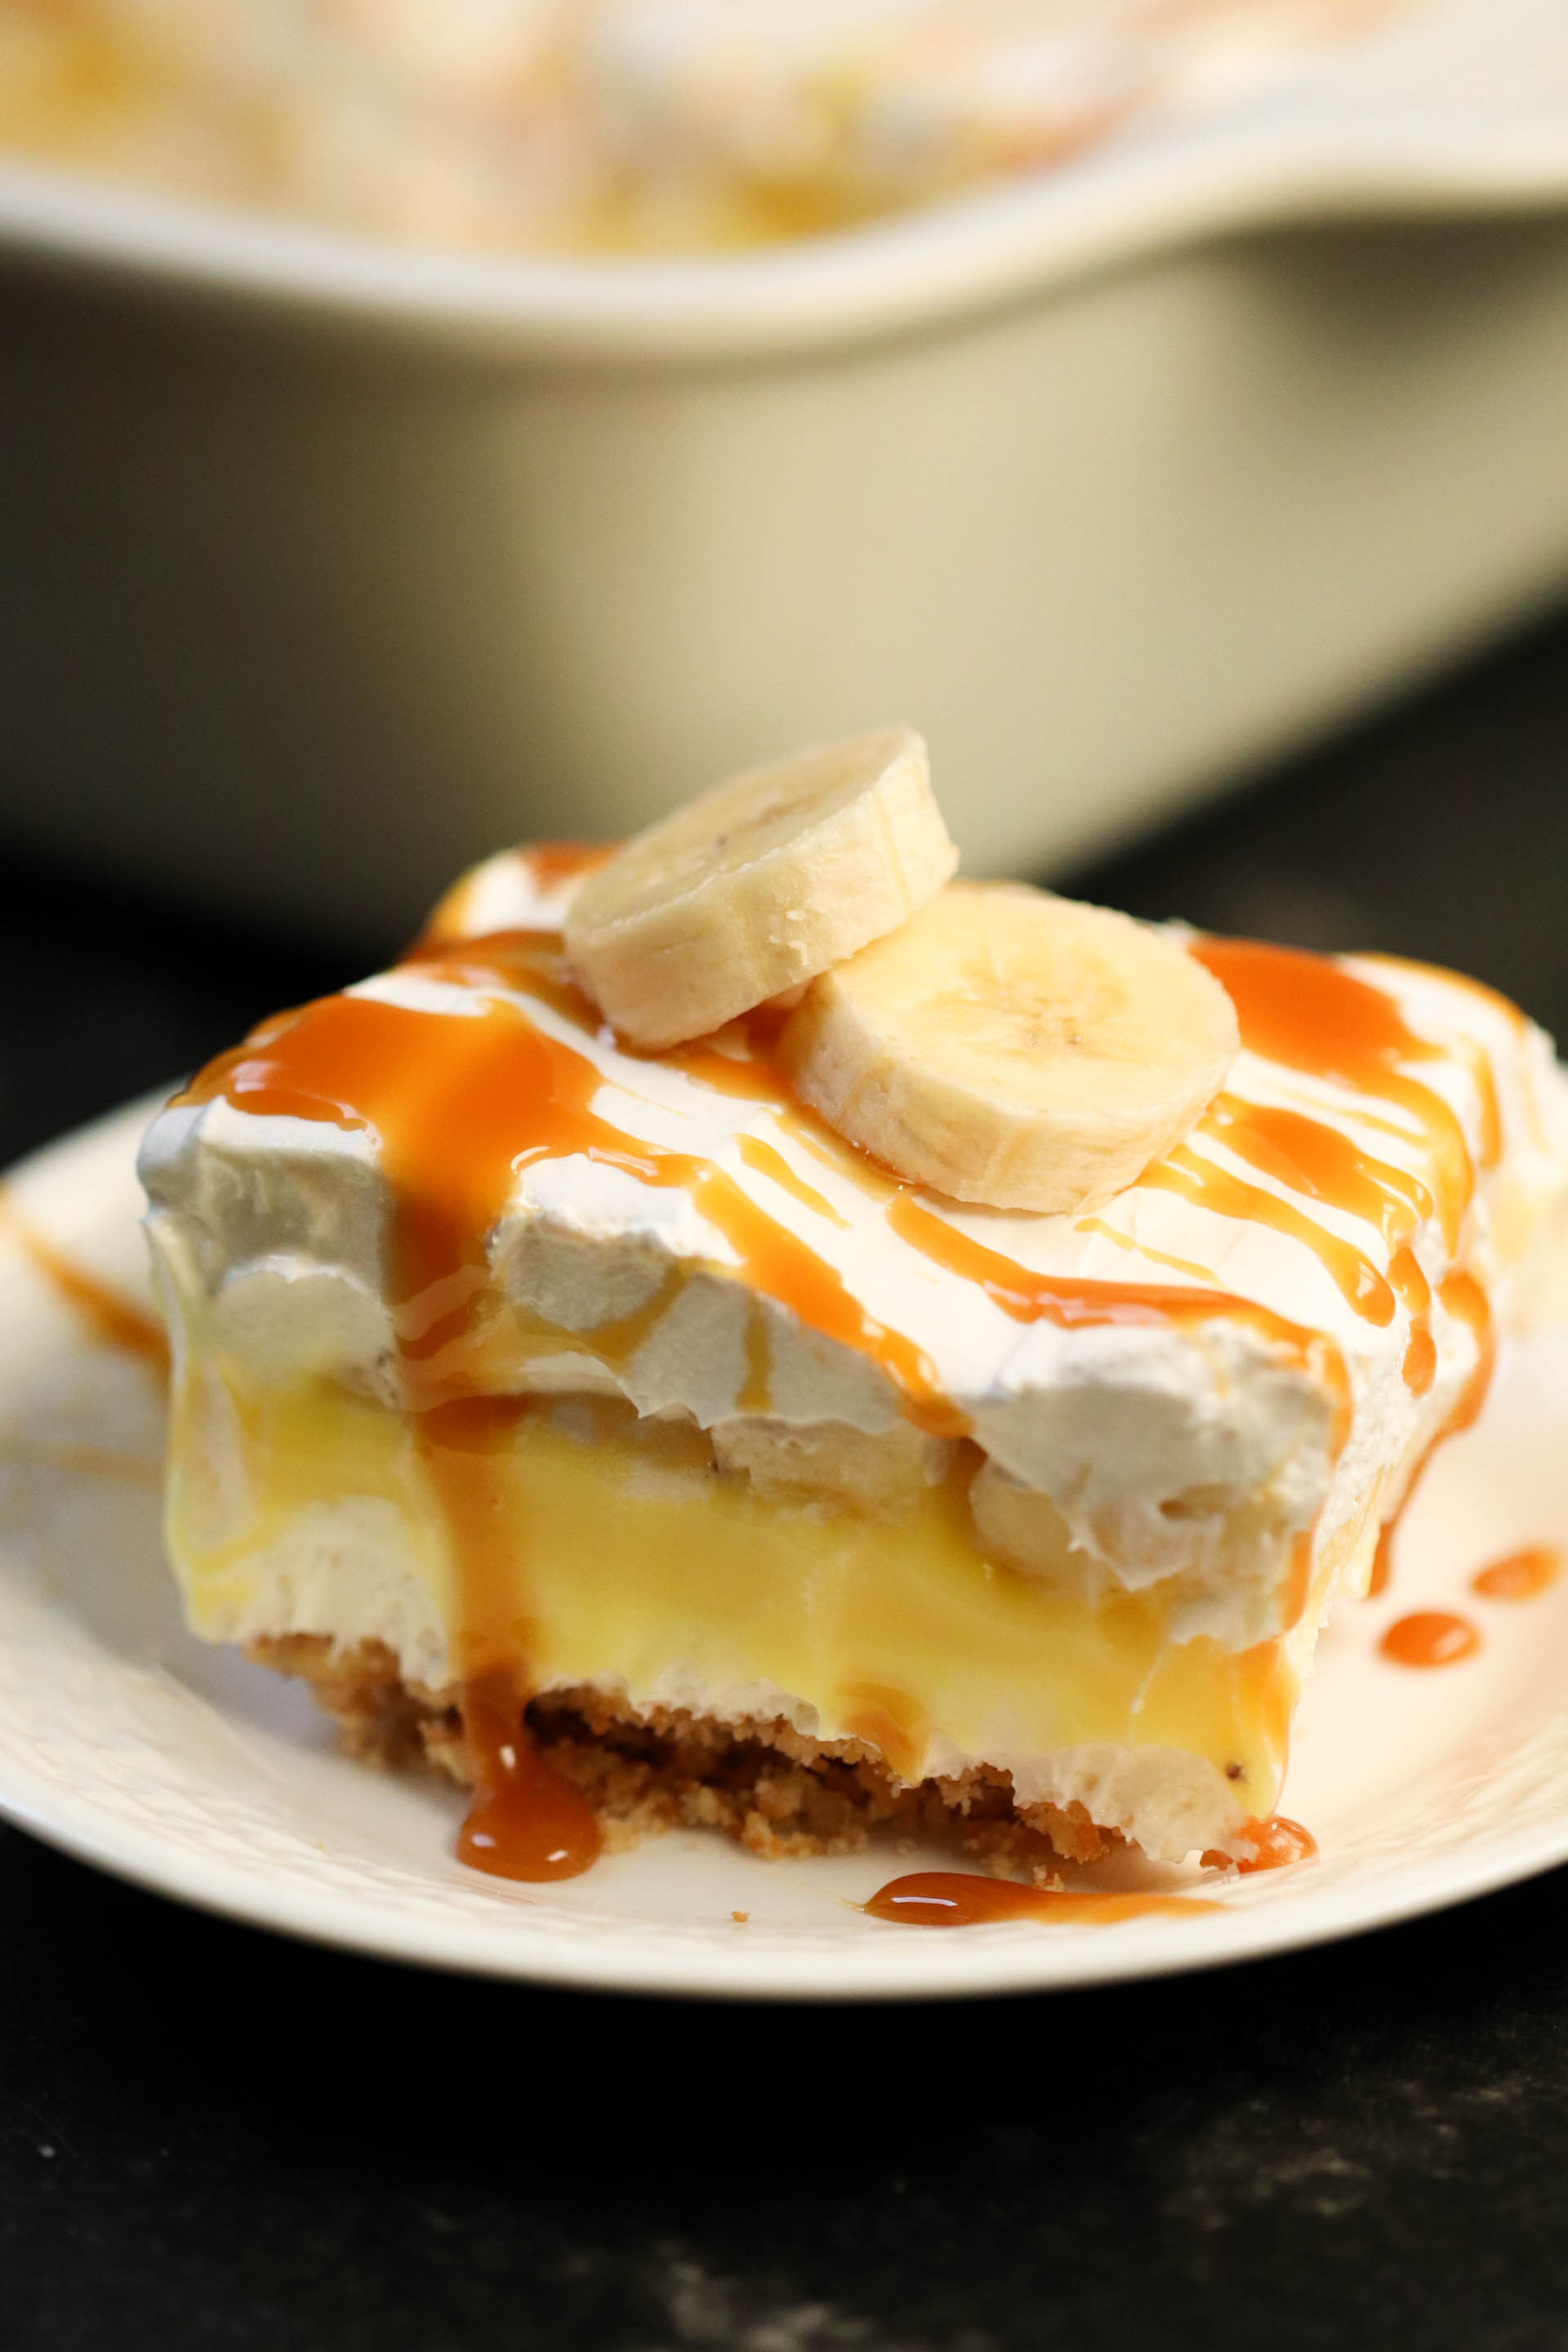 Easy Banana Cream Pie (with Nilla Wafer Crust)